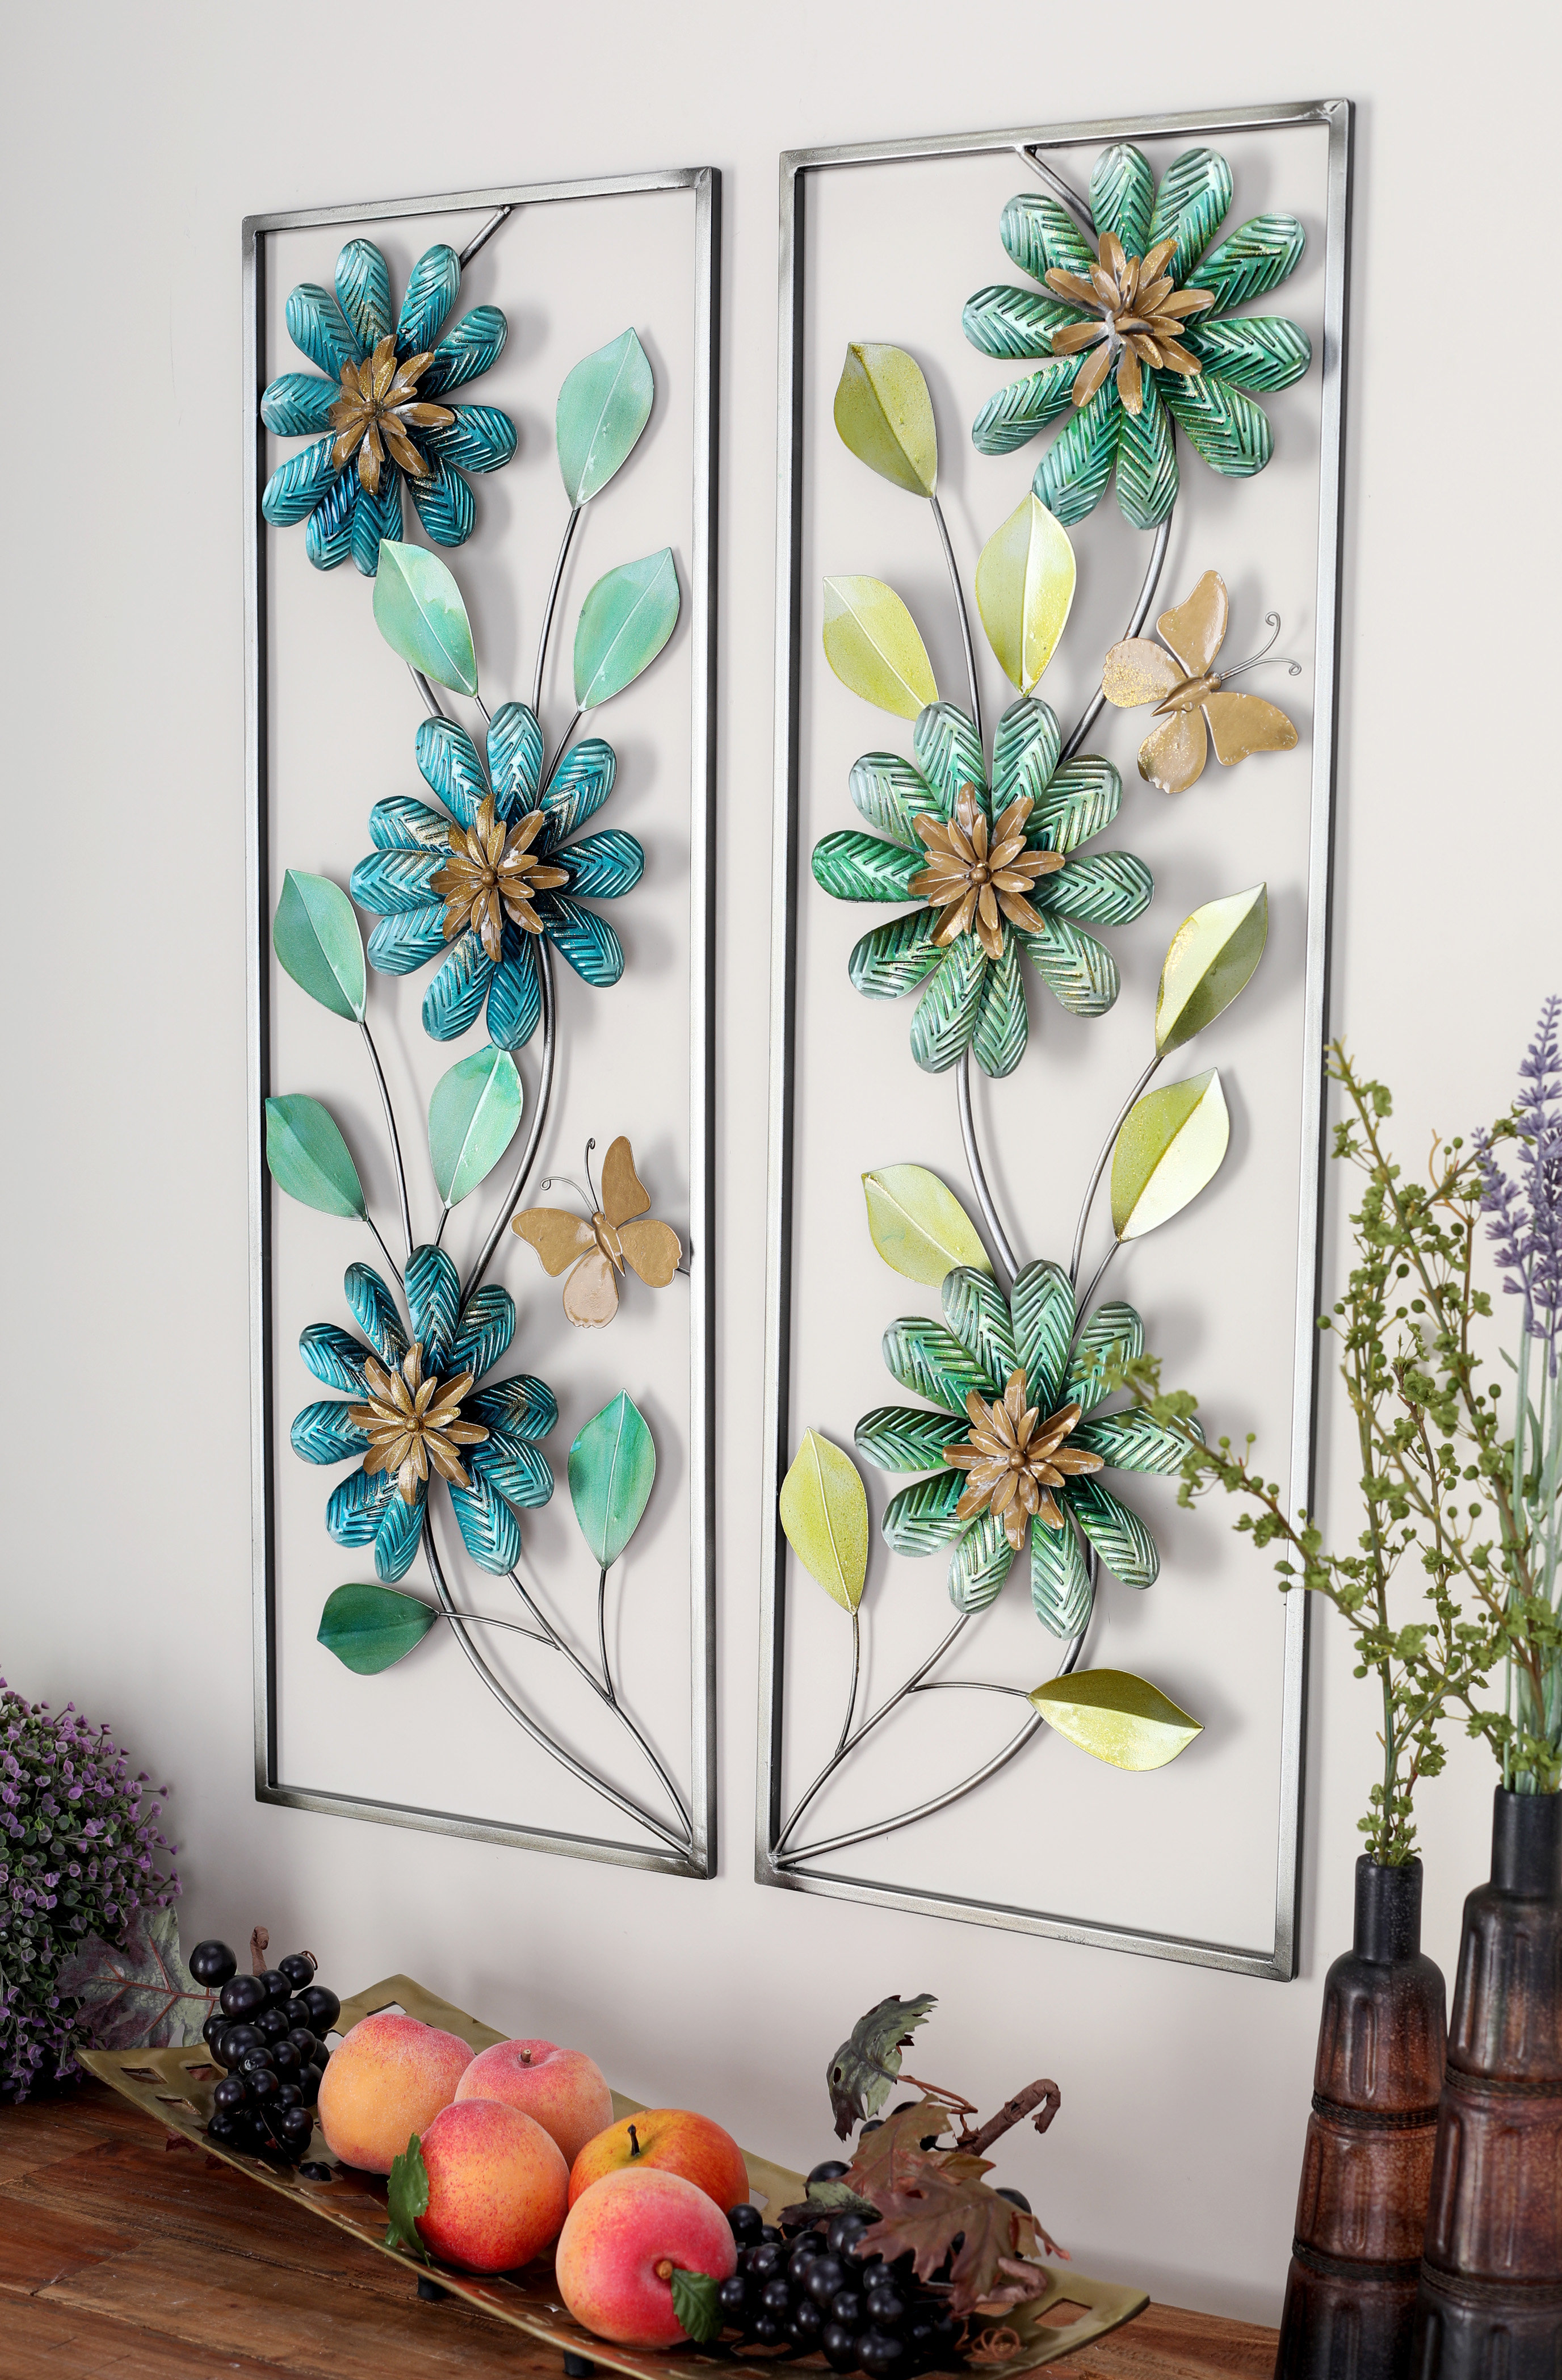 Popular Raheem Flowers Metal Wall Decor Intended For Cole & Grey 2 Piece Metal Wall Décor Set & Reviews (Gallery 5 of 20)